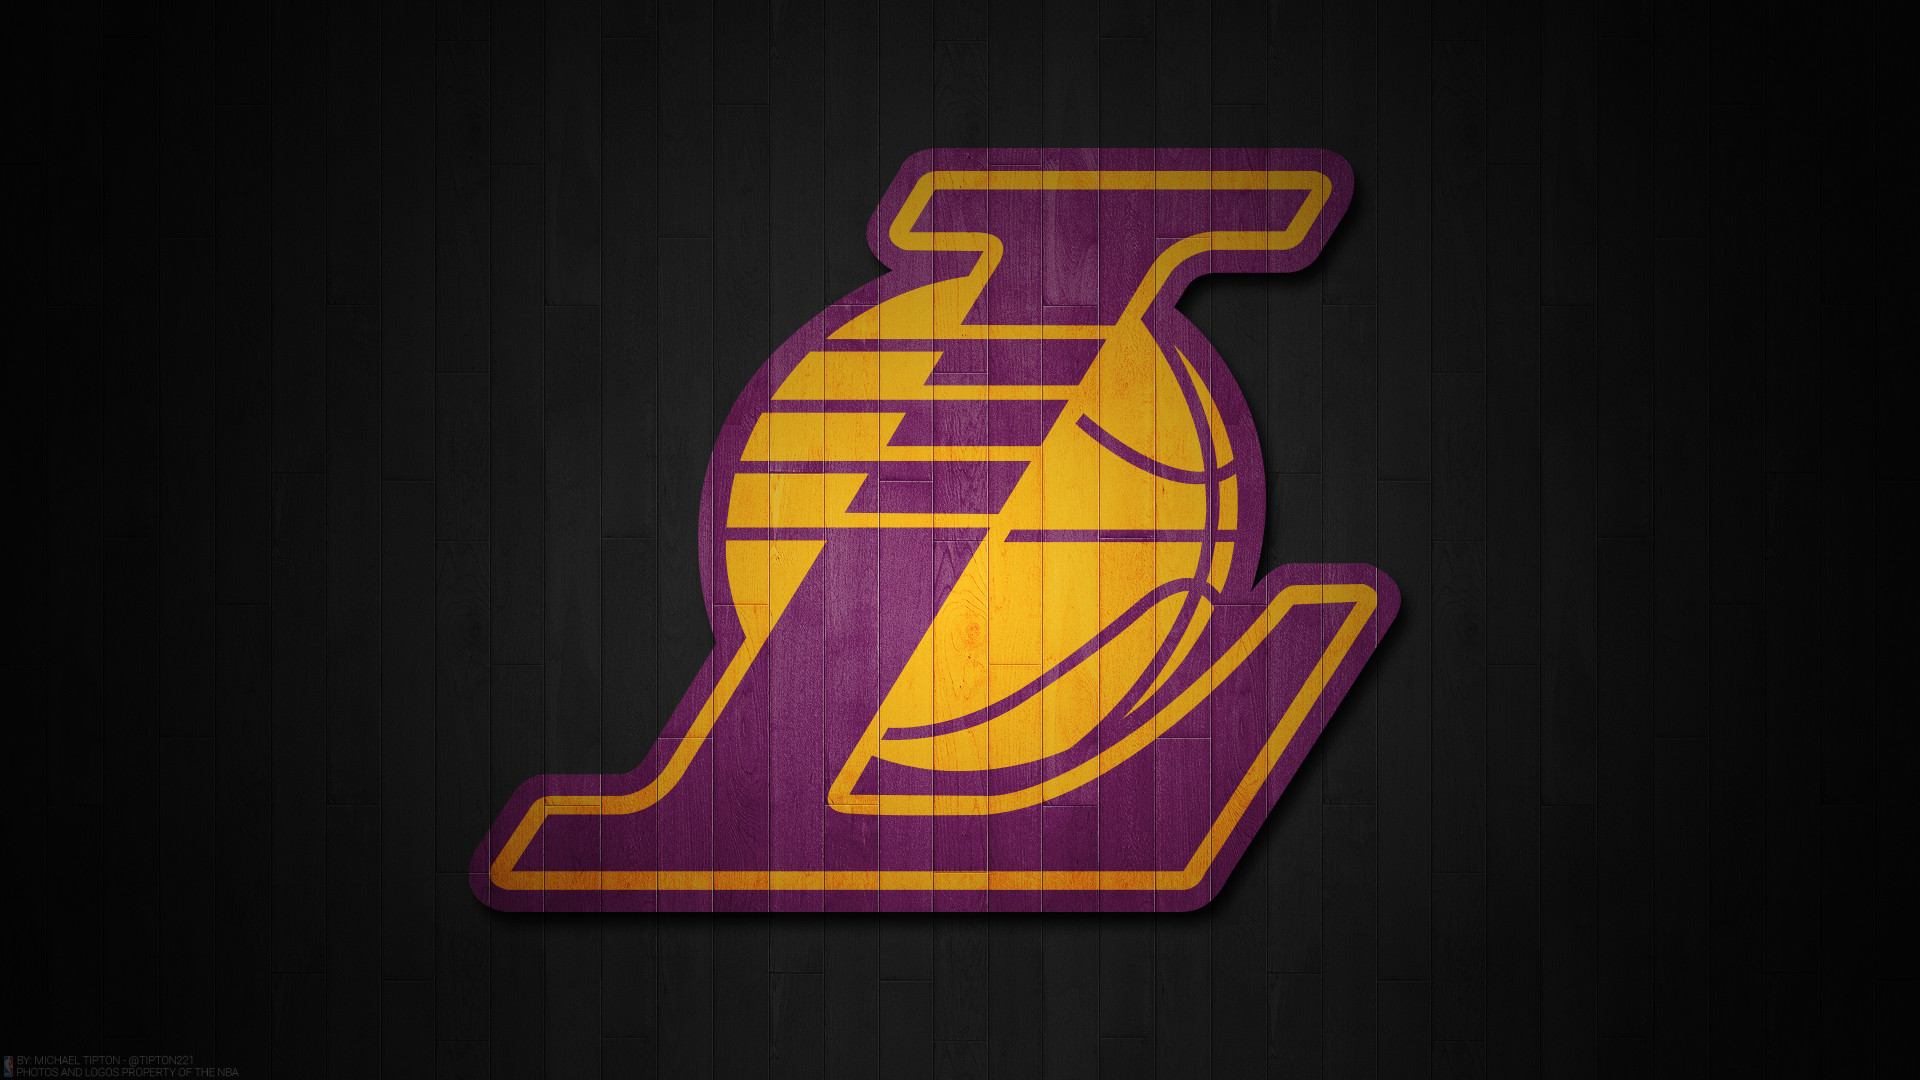 nba team logos wallpaper 2018 71 images